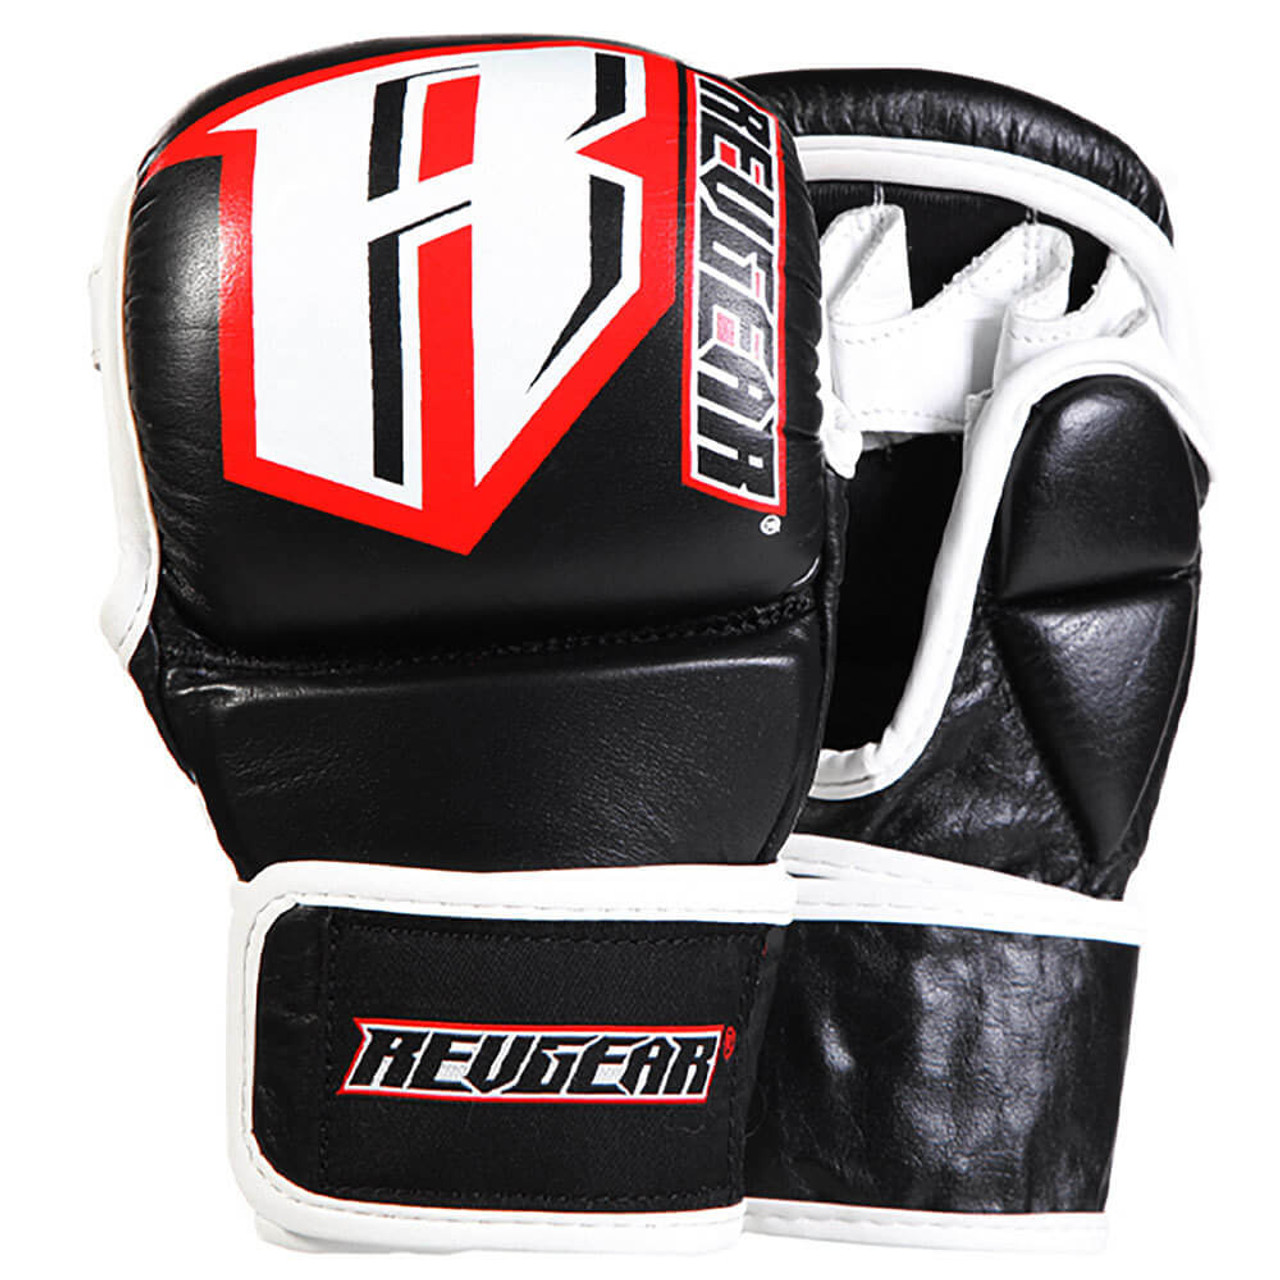 MMA Training Sparring Gloves - Black